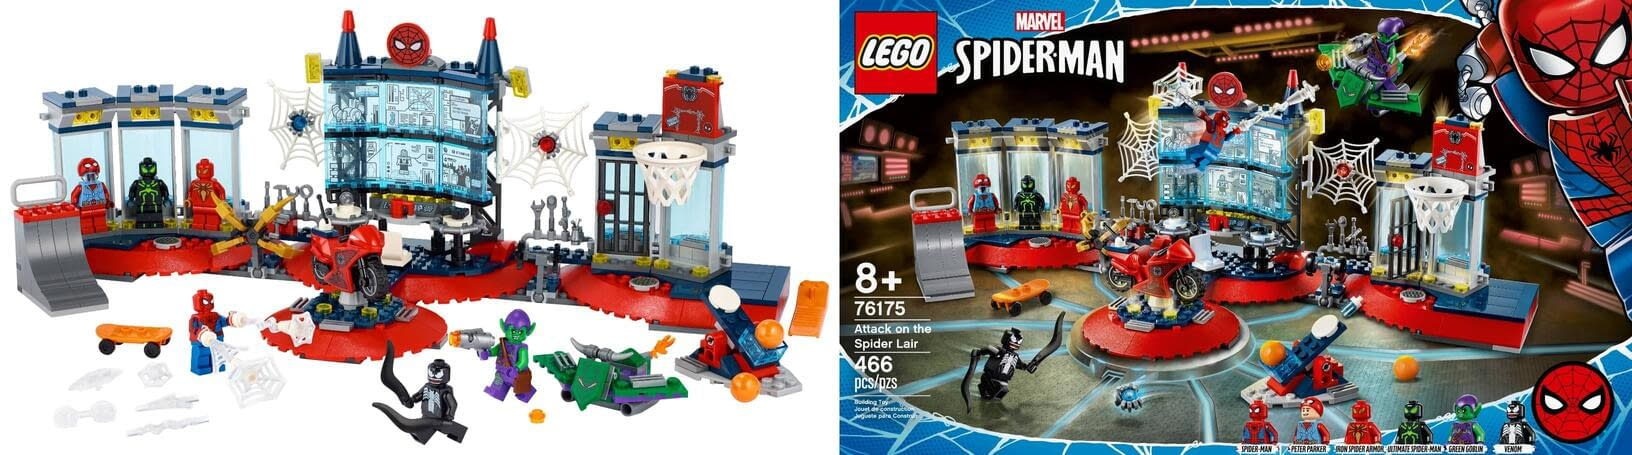 Spider-Man Has His Own Headquarters in New LEGO Set